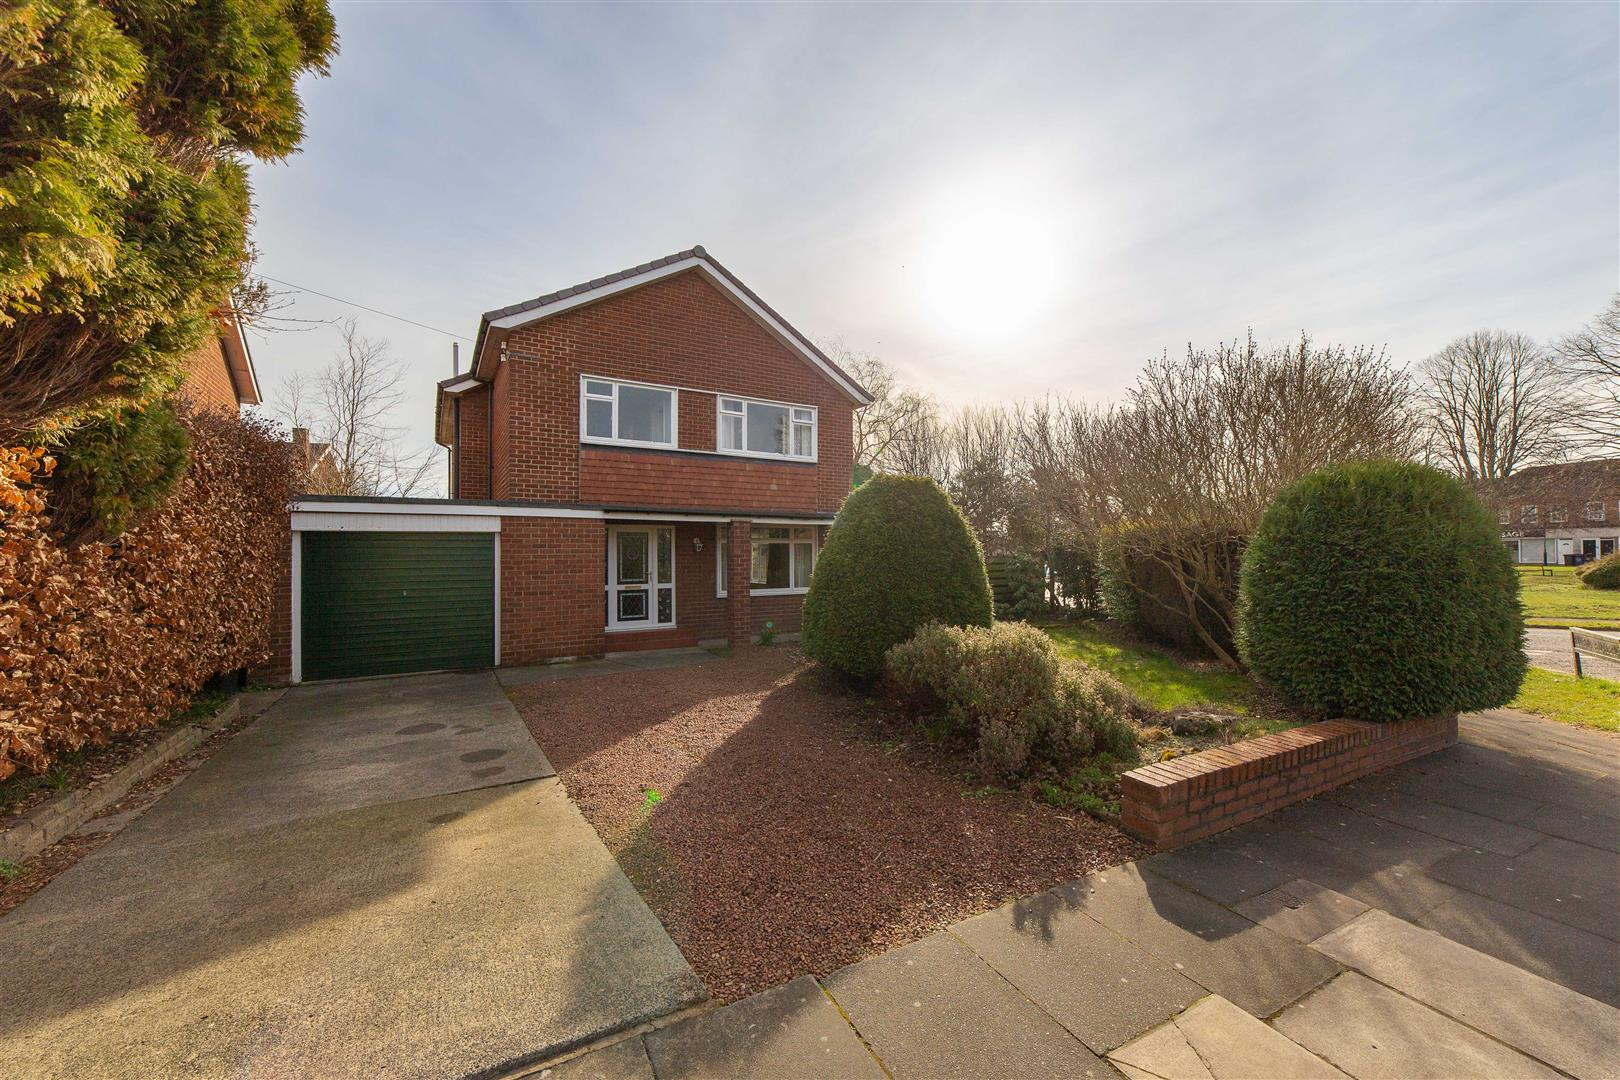 4 bed detached house for sale in Melton Park, NE3 5TA, NE3